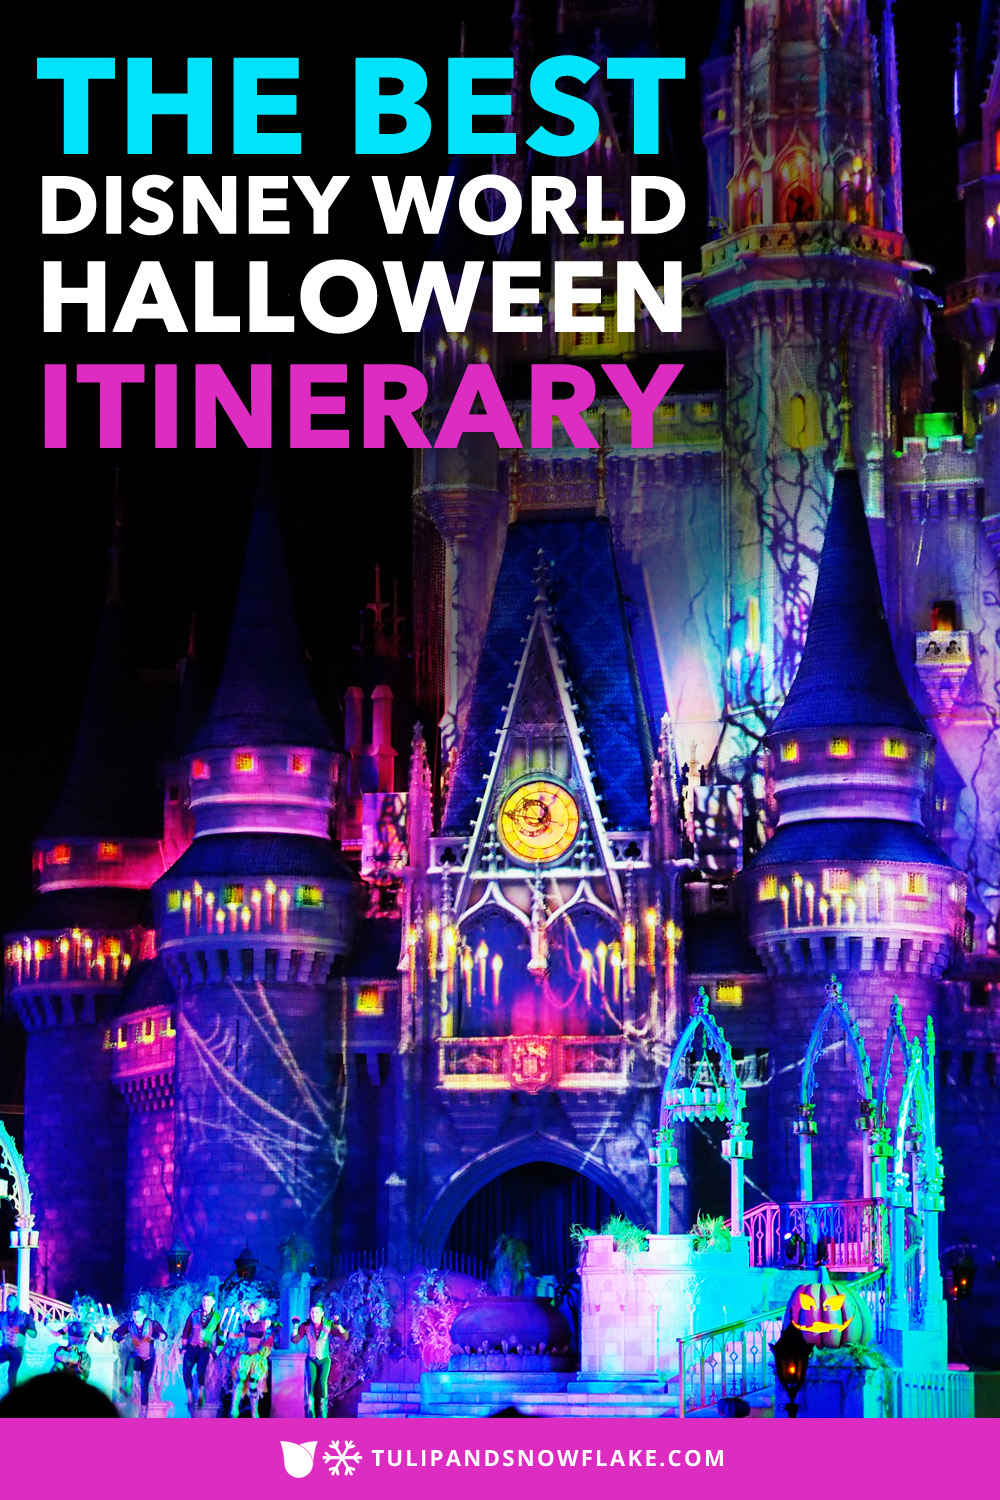 Best Disney World Halloween Itinerary